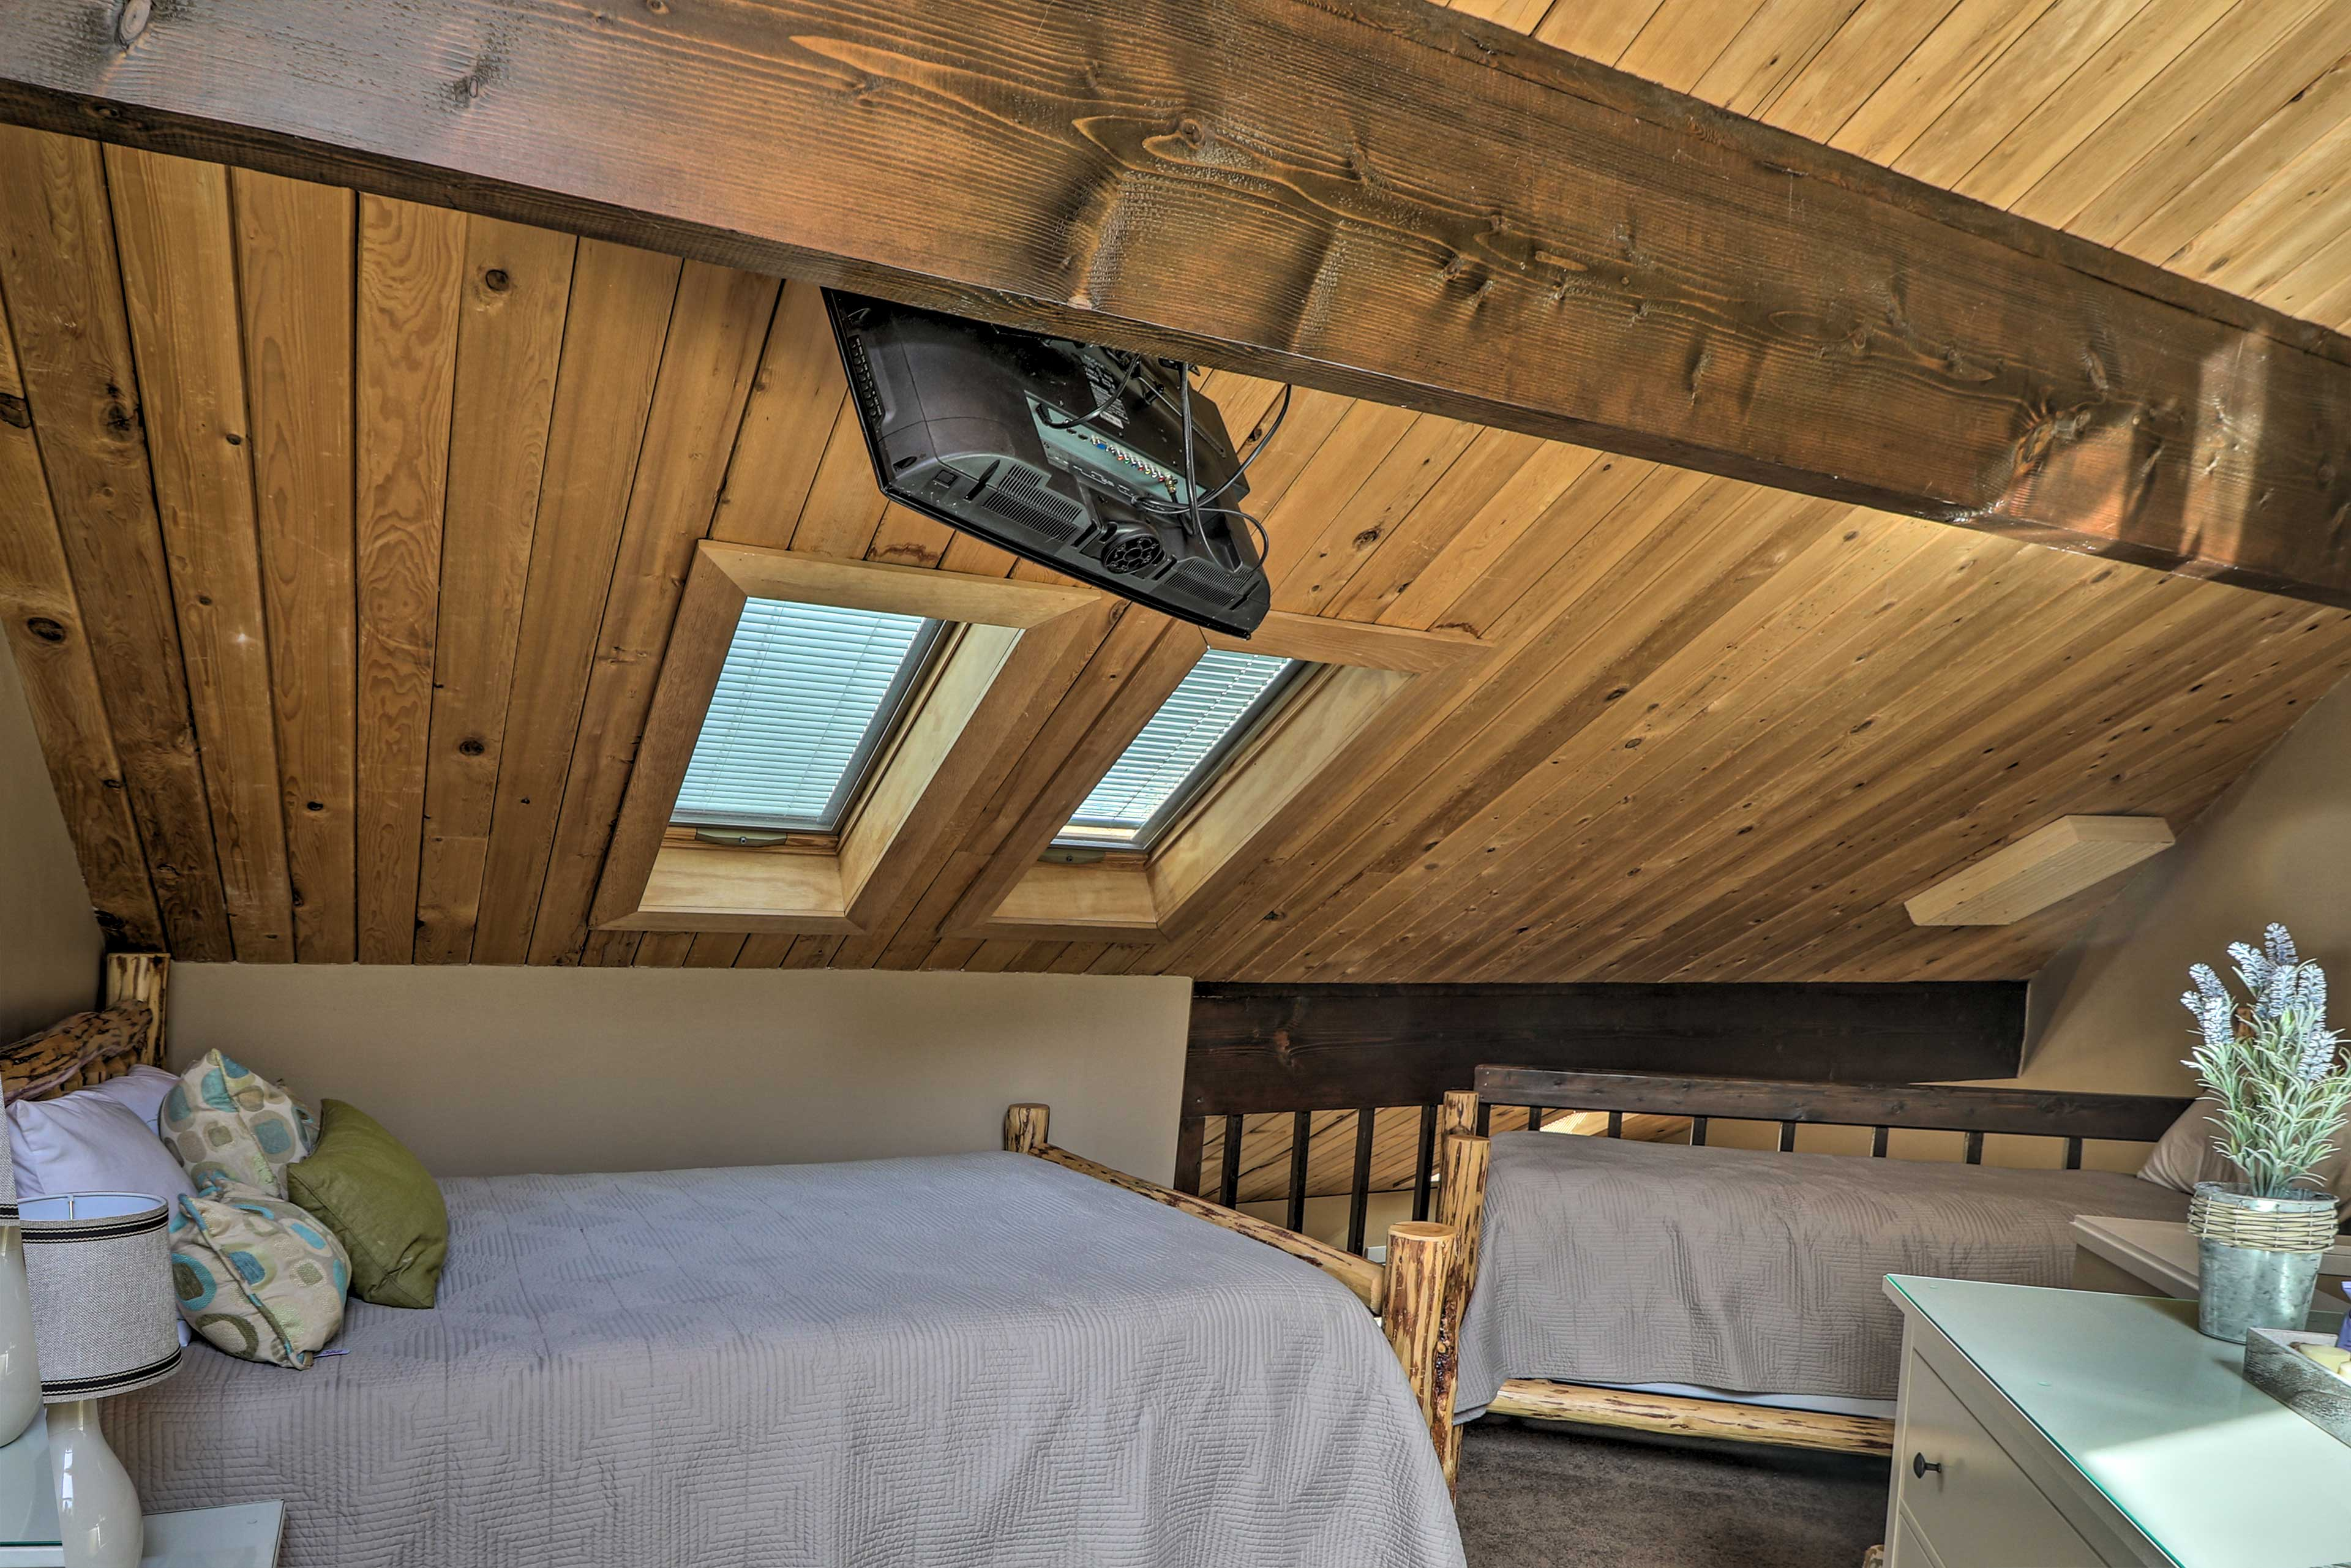 The lofted bedroom features a queen and twin beds.